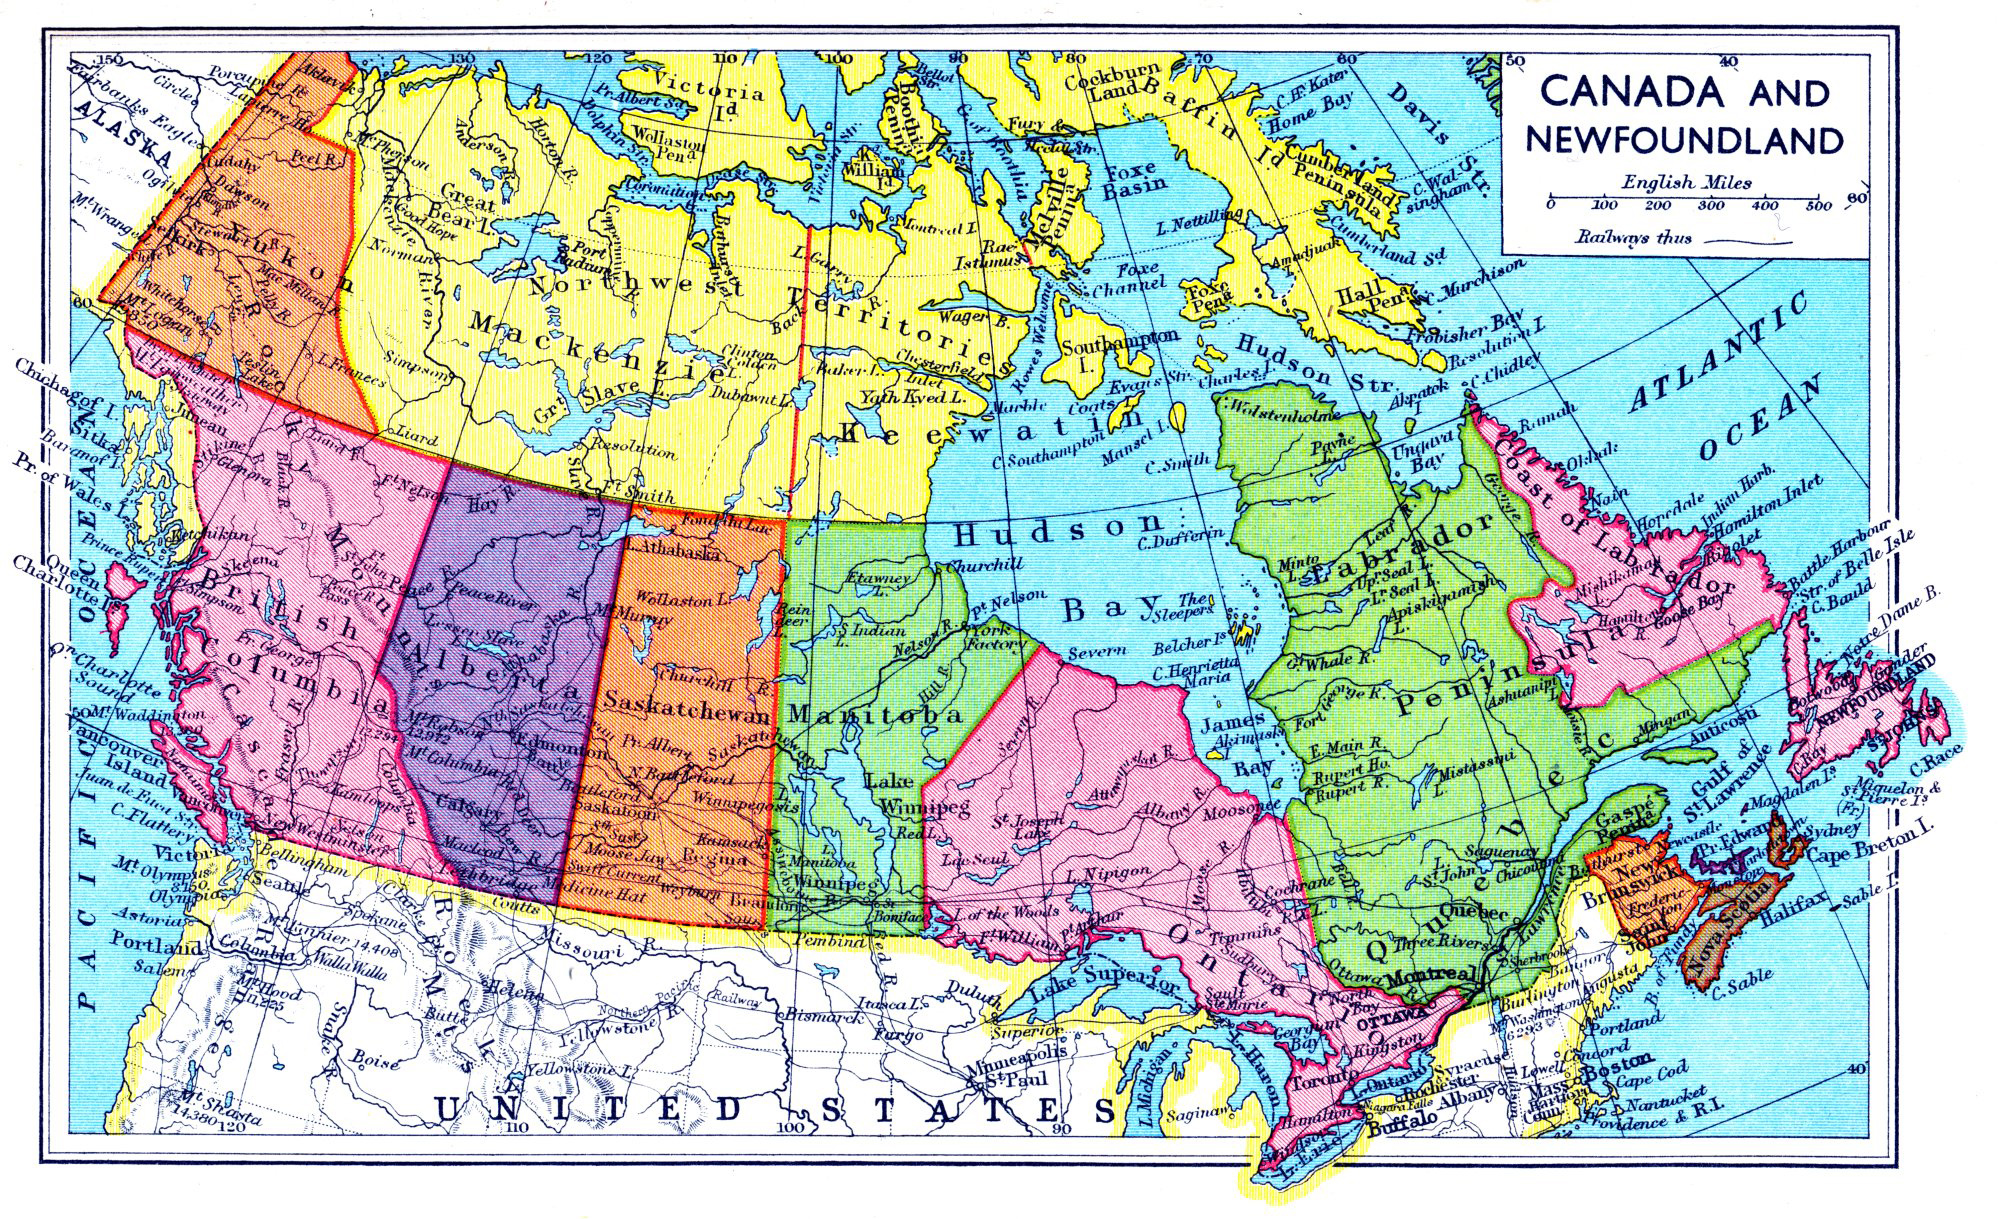 Newfoundland Map Of Canada Large old political and administrative map of Canada and